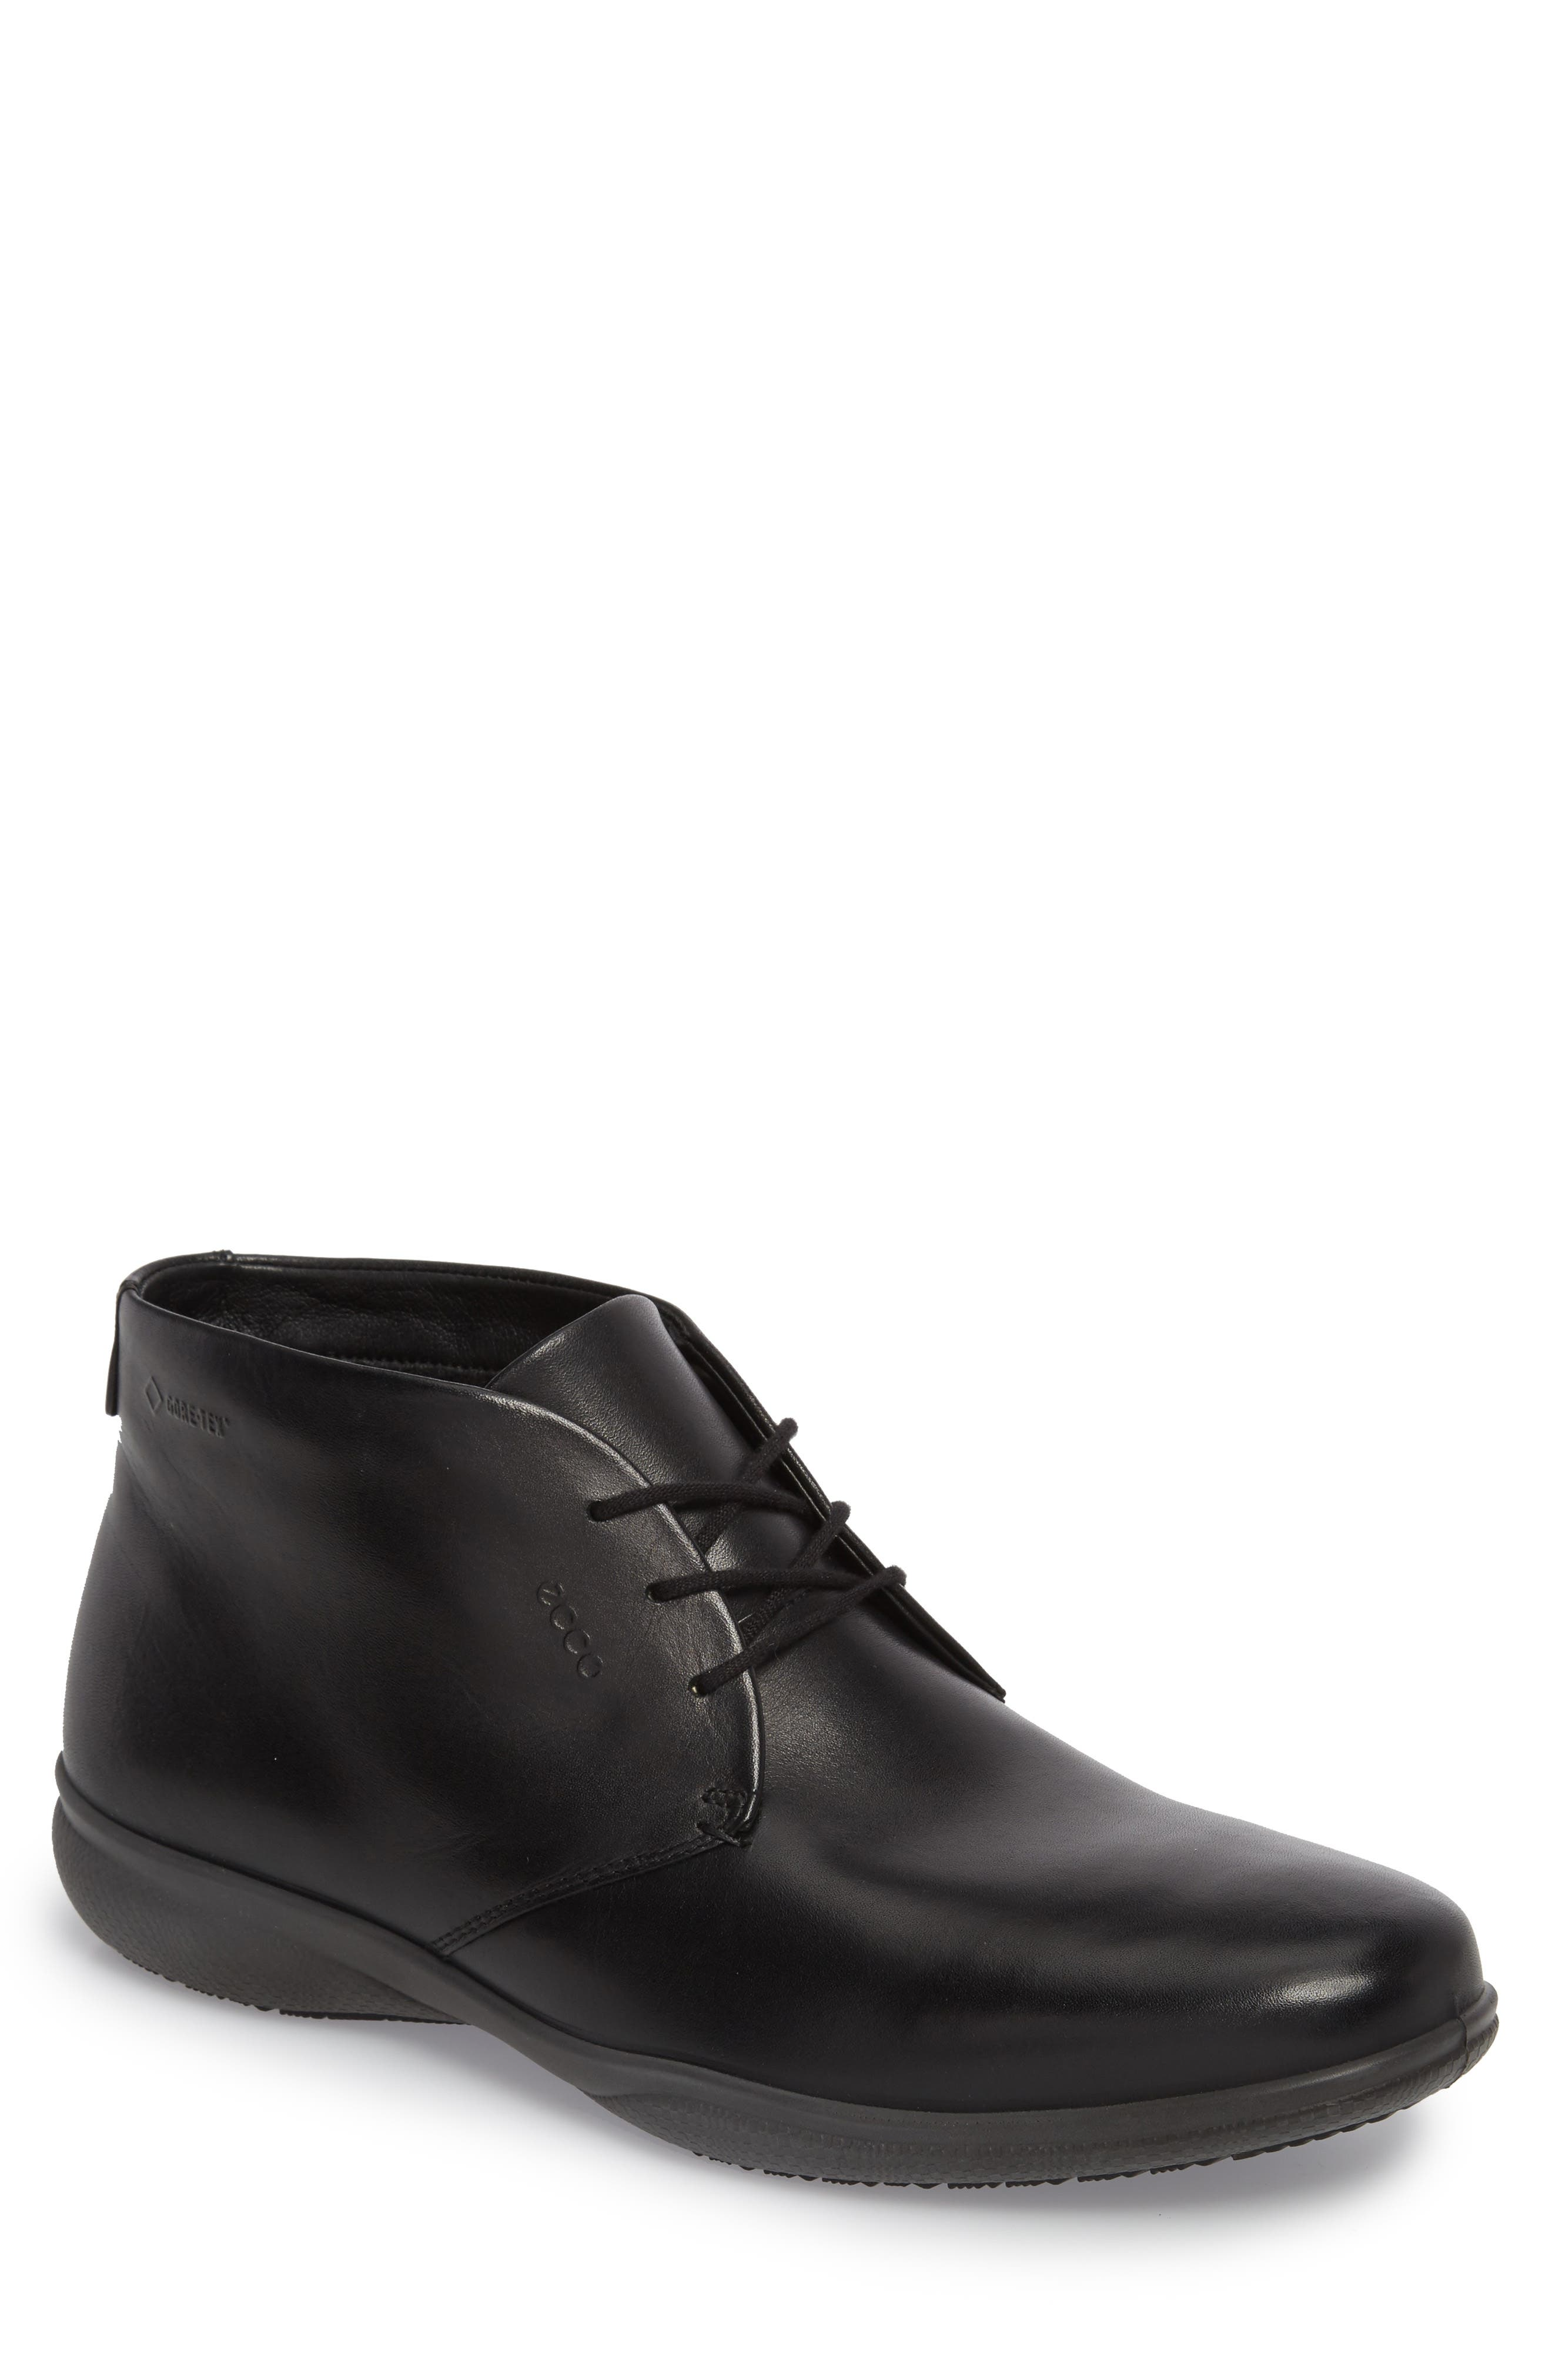 'Grenoble' Chukka Boot,                         Main,                         color, Black Leather